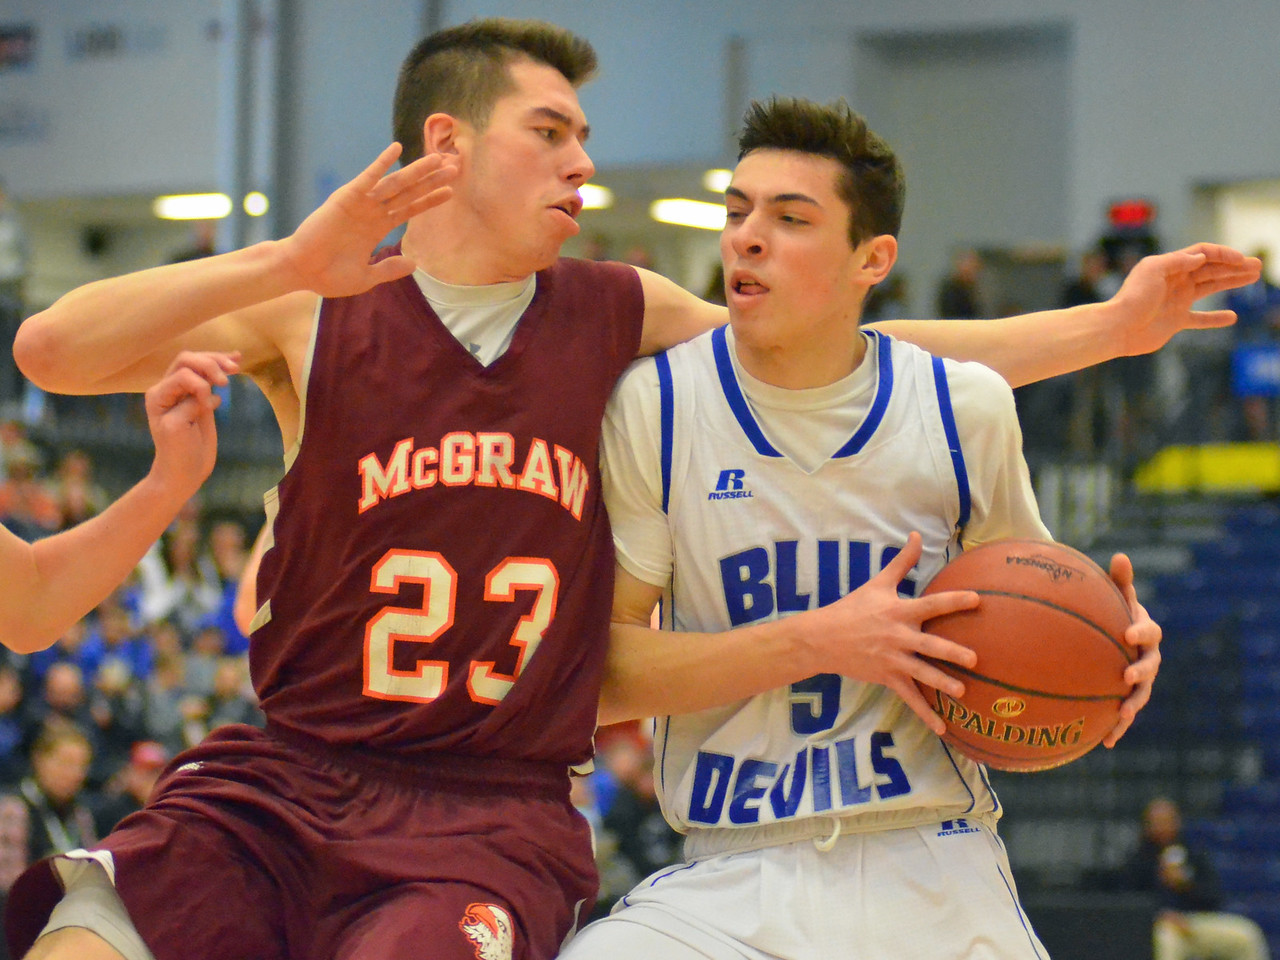 KYLE MENNIG - ONEIDA DAILY DISPATCH Madison's Spencer Haviland (5) drives into the lane as McGraw's Jordan Cowen (23) defends during the Section III Class D final in Syracuse on Sunday, March 5, 2017.